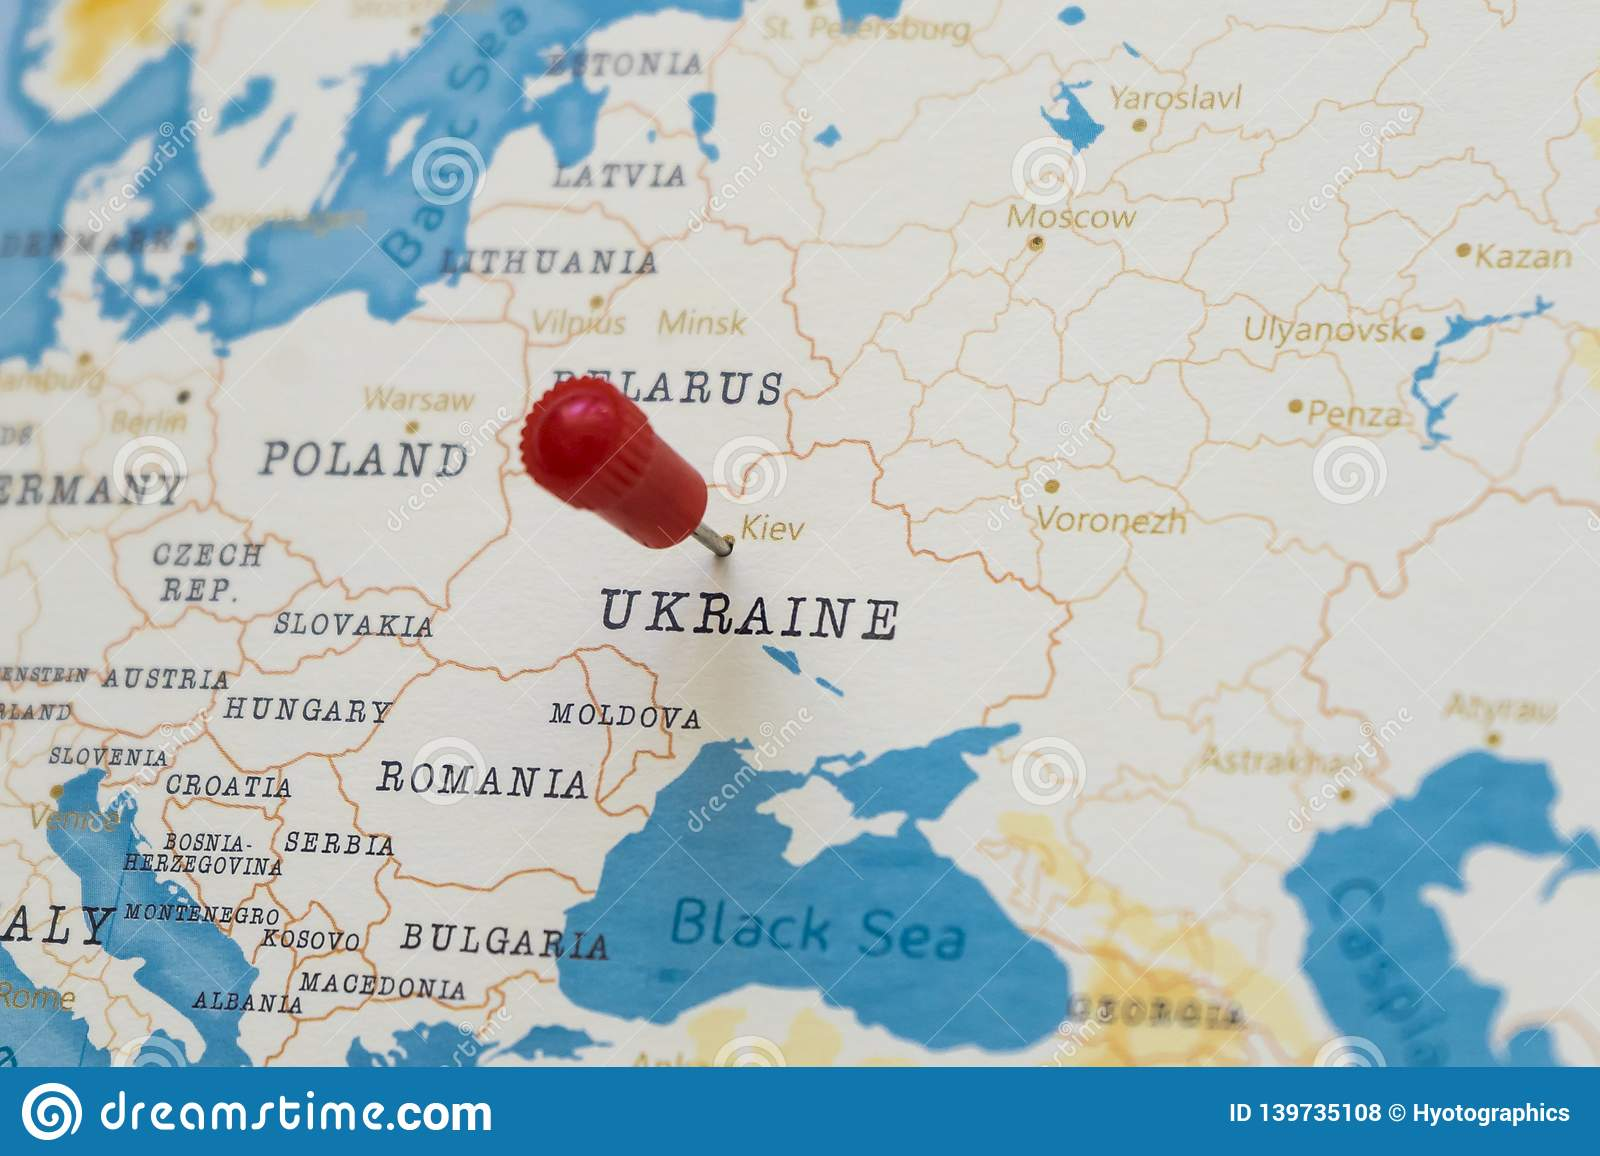 Picture of: A Pin On Kiev Ukraine In The World Map Stock Photo Image Of Holiday Journey 139735108